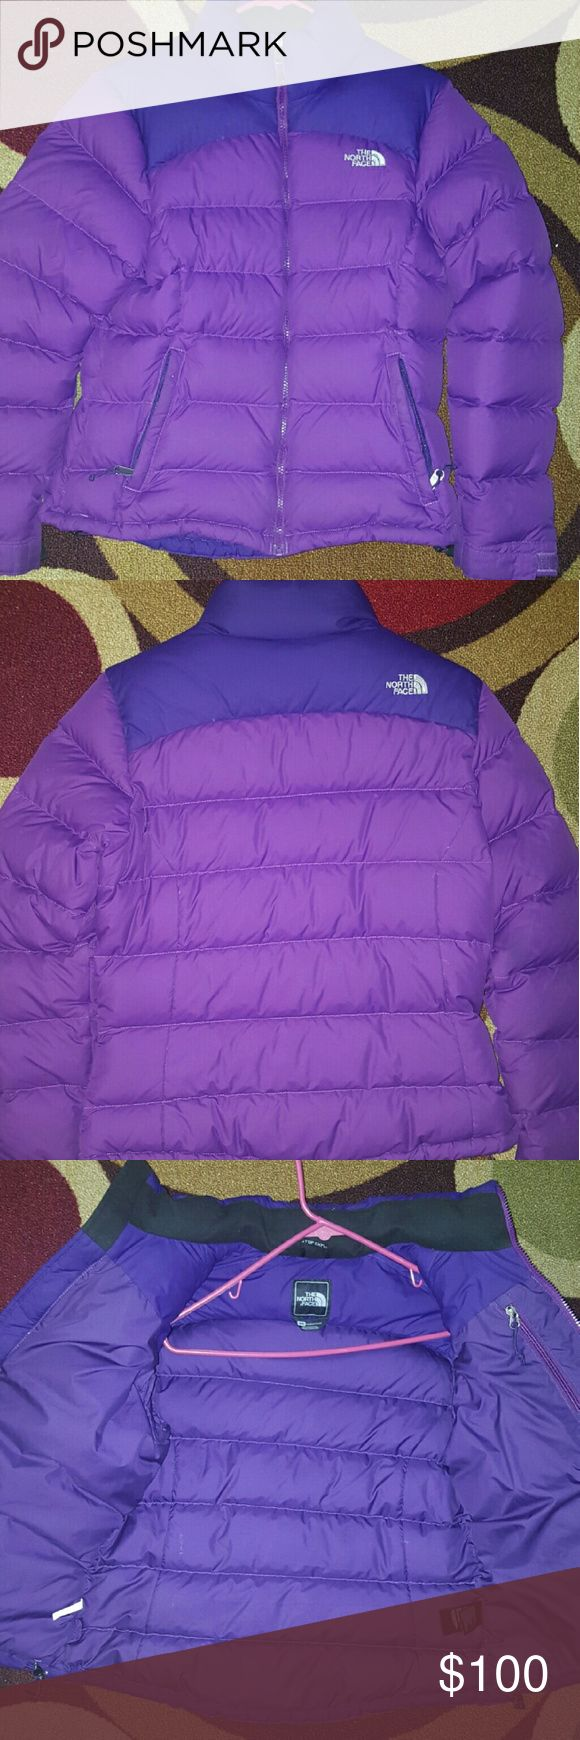 Ladies North Face Goose Down Ski Jacket Like new worn a few times.  The jacket is in great used condition, very nice color.  Accepting reasonable offers, please don't waste my time. North Face Jackets & Coats Puffers